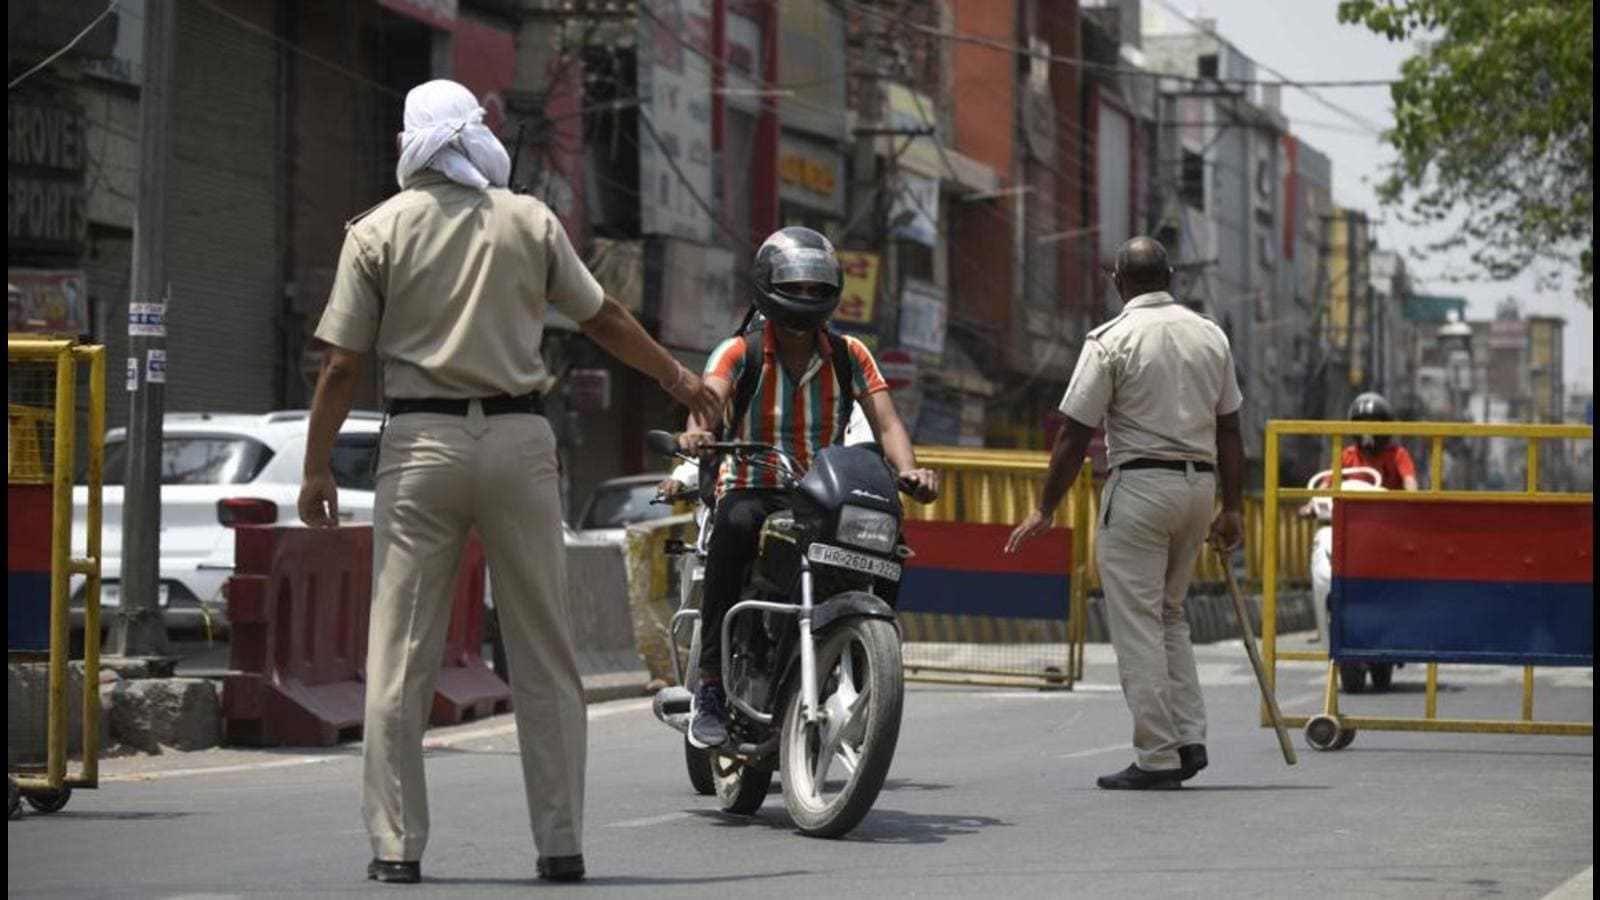 10 DAY LOCKDOWN IN TELANGANA   LOCKDOWN IMPOSED FROM 12 MAY TO 22 MAY